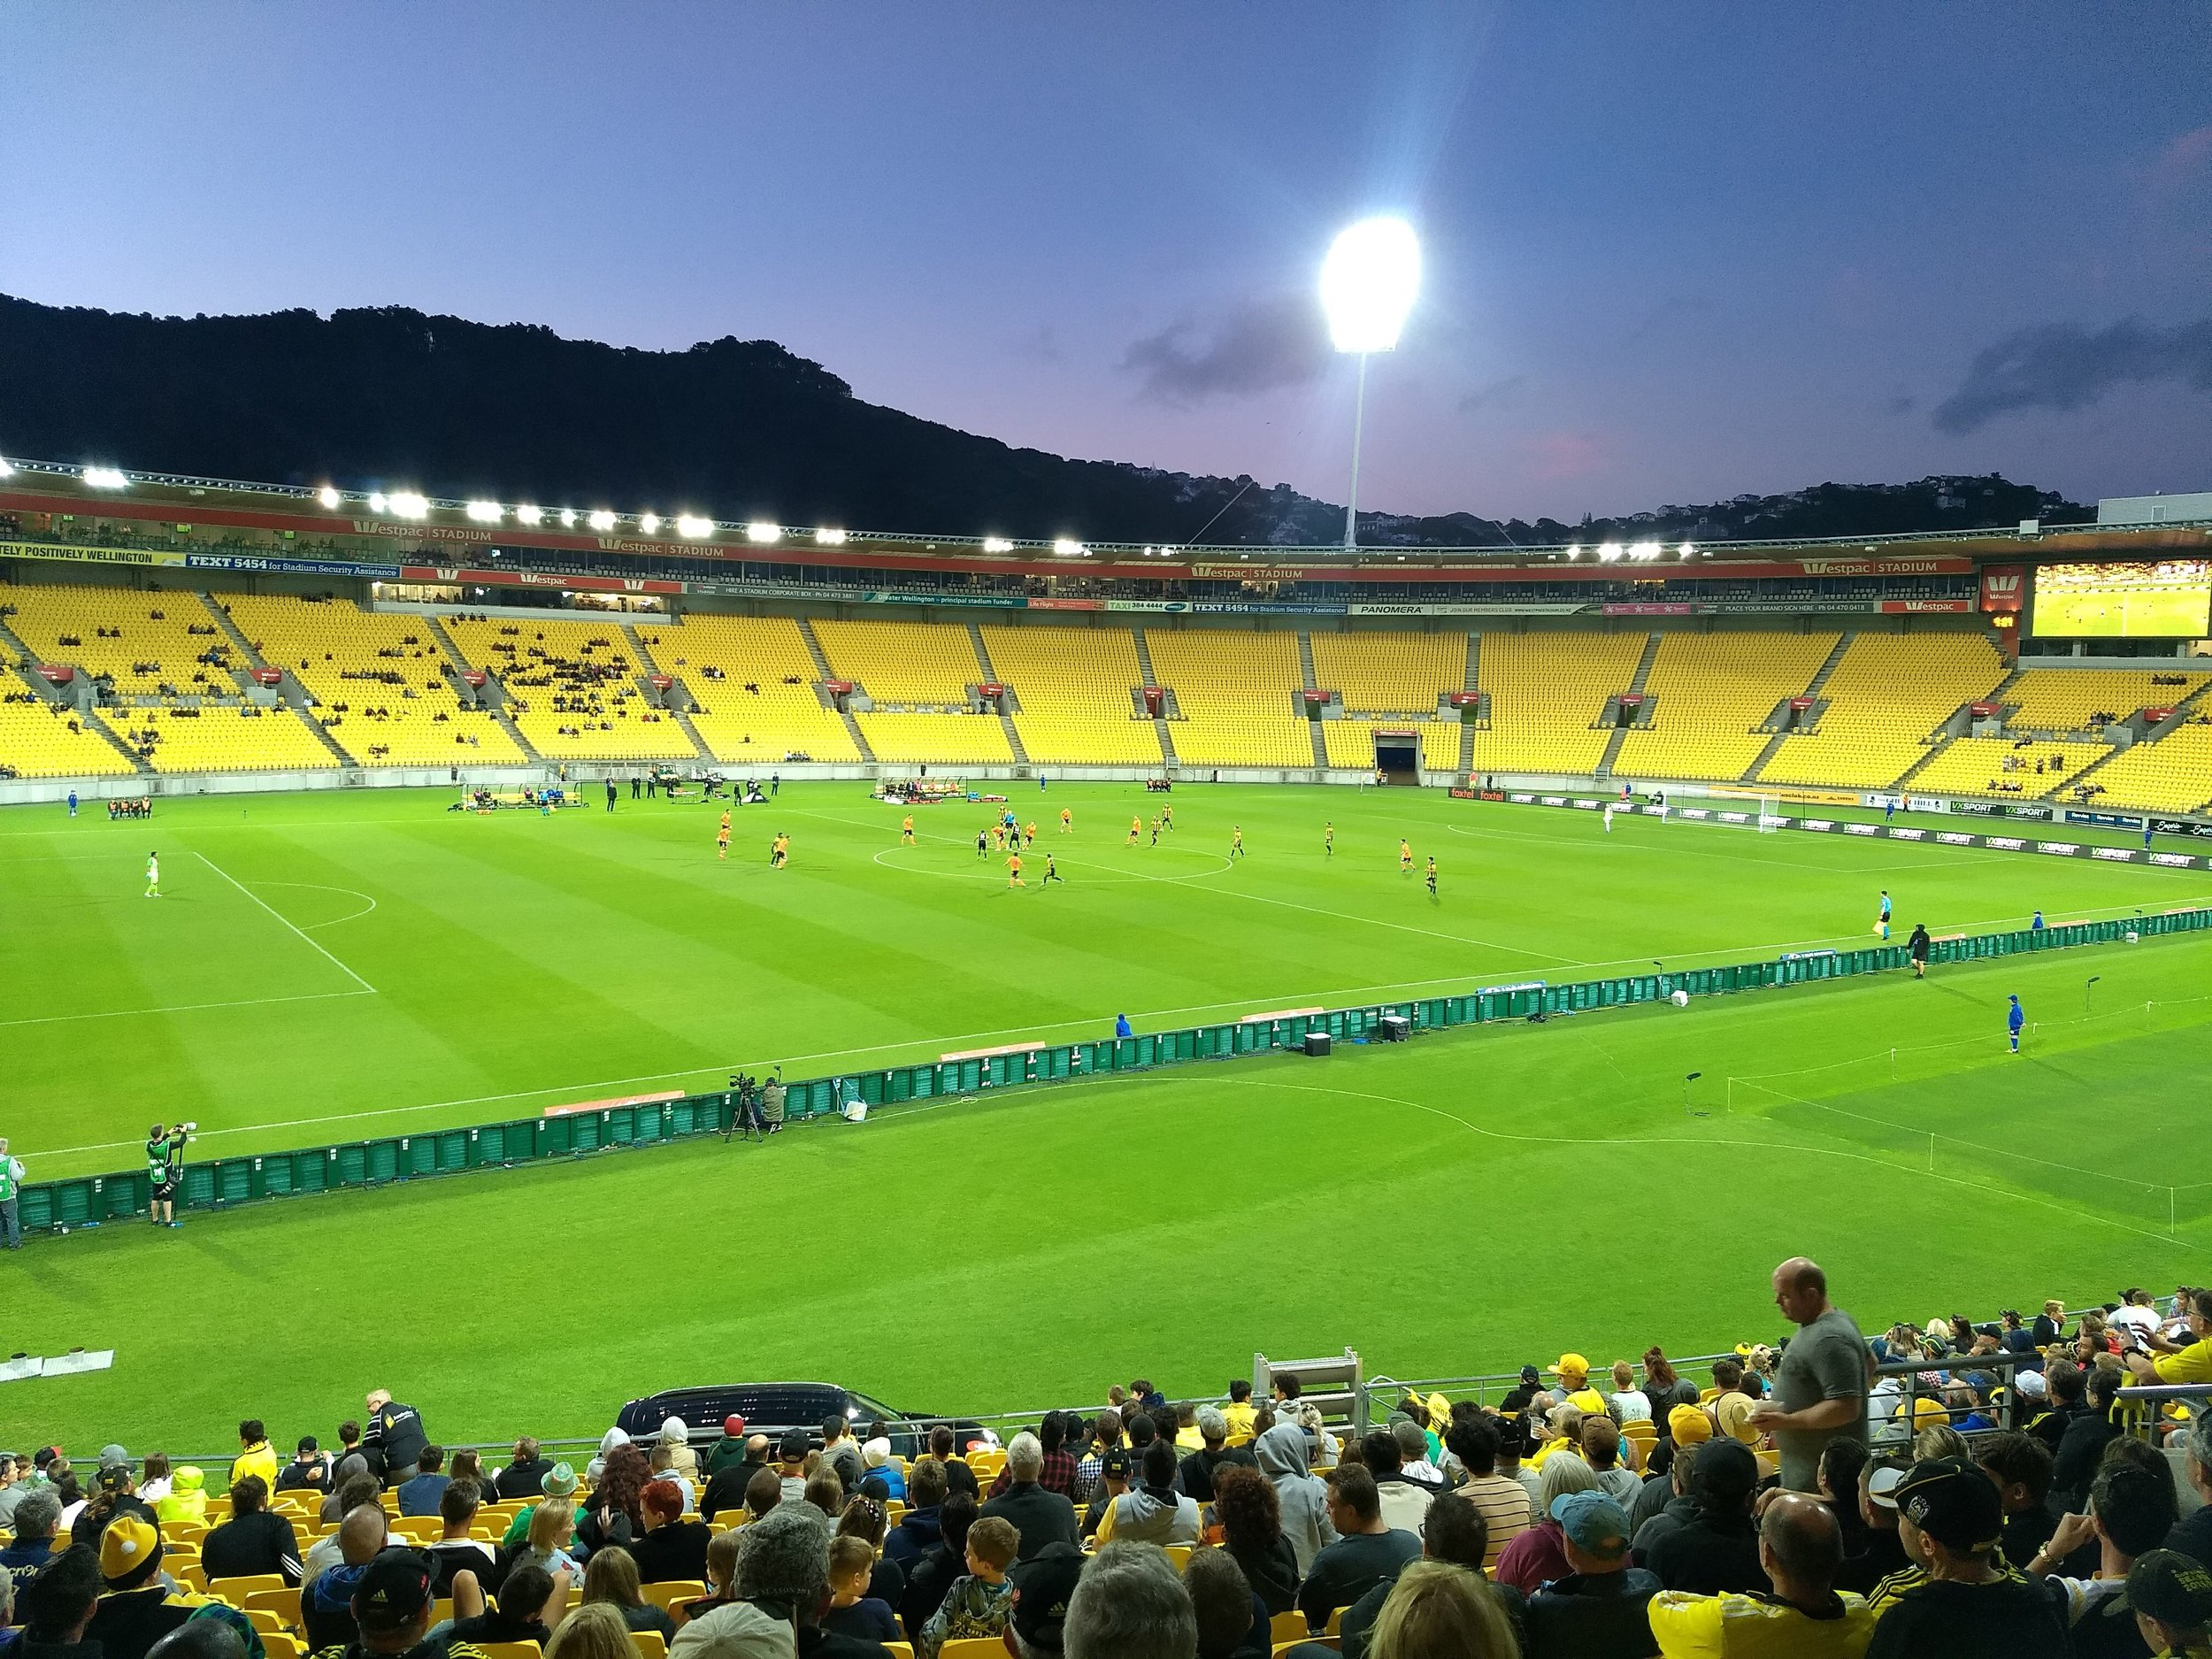 Just like home am-I-right? #GoCrew (actually Wellington Phoenix though..)